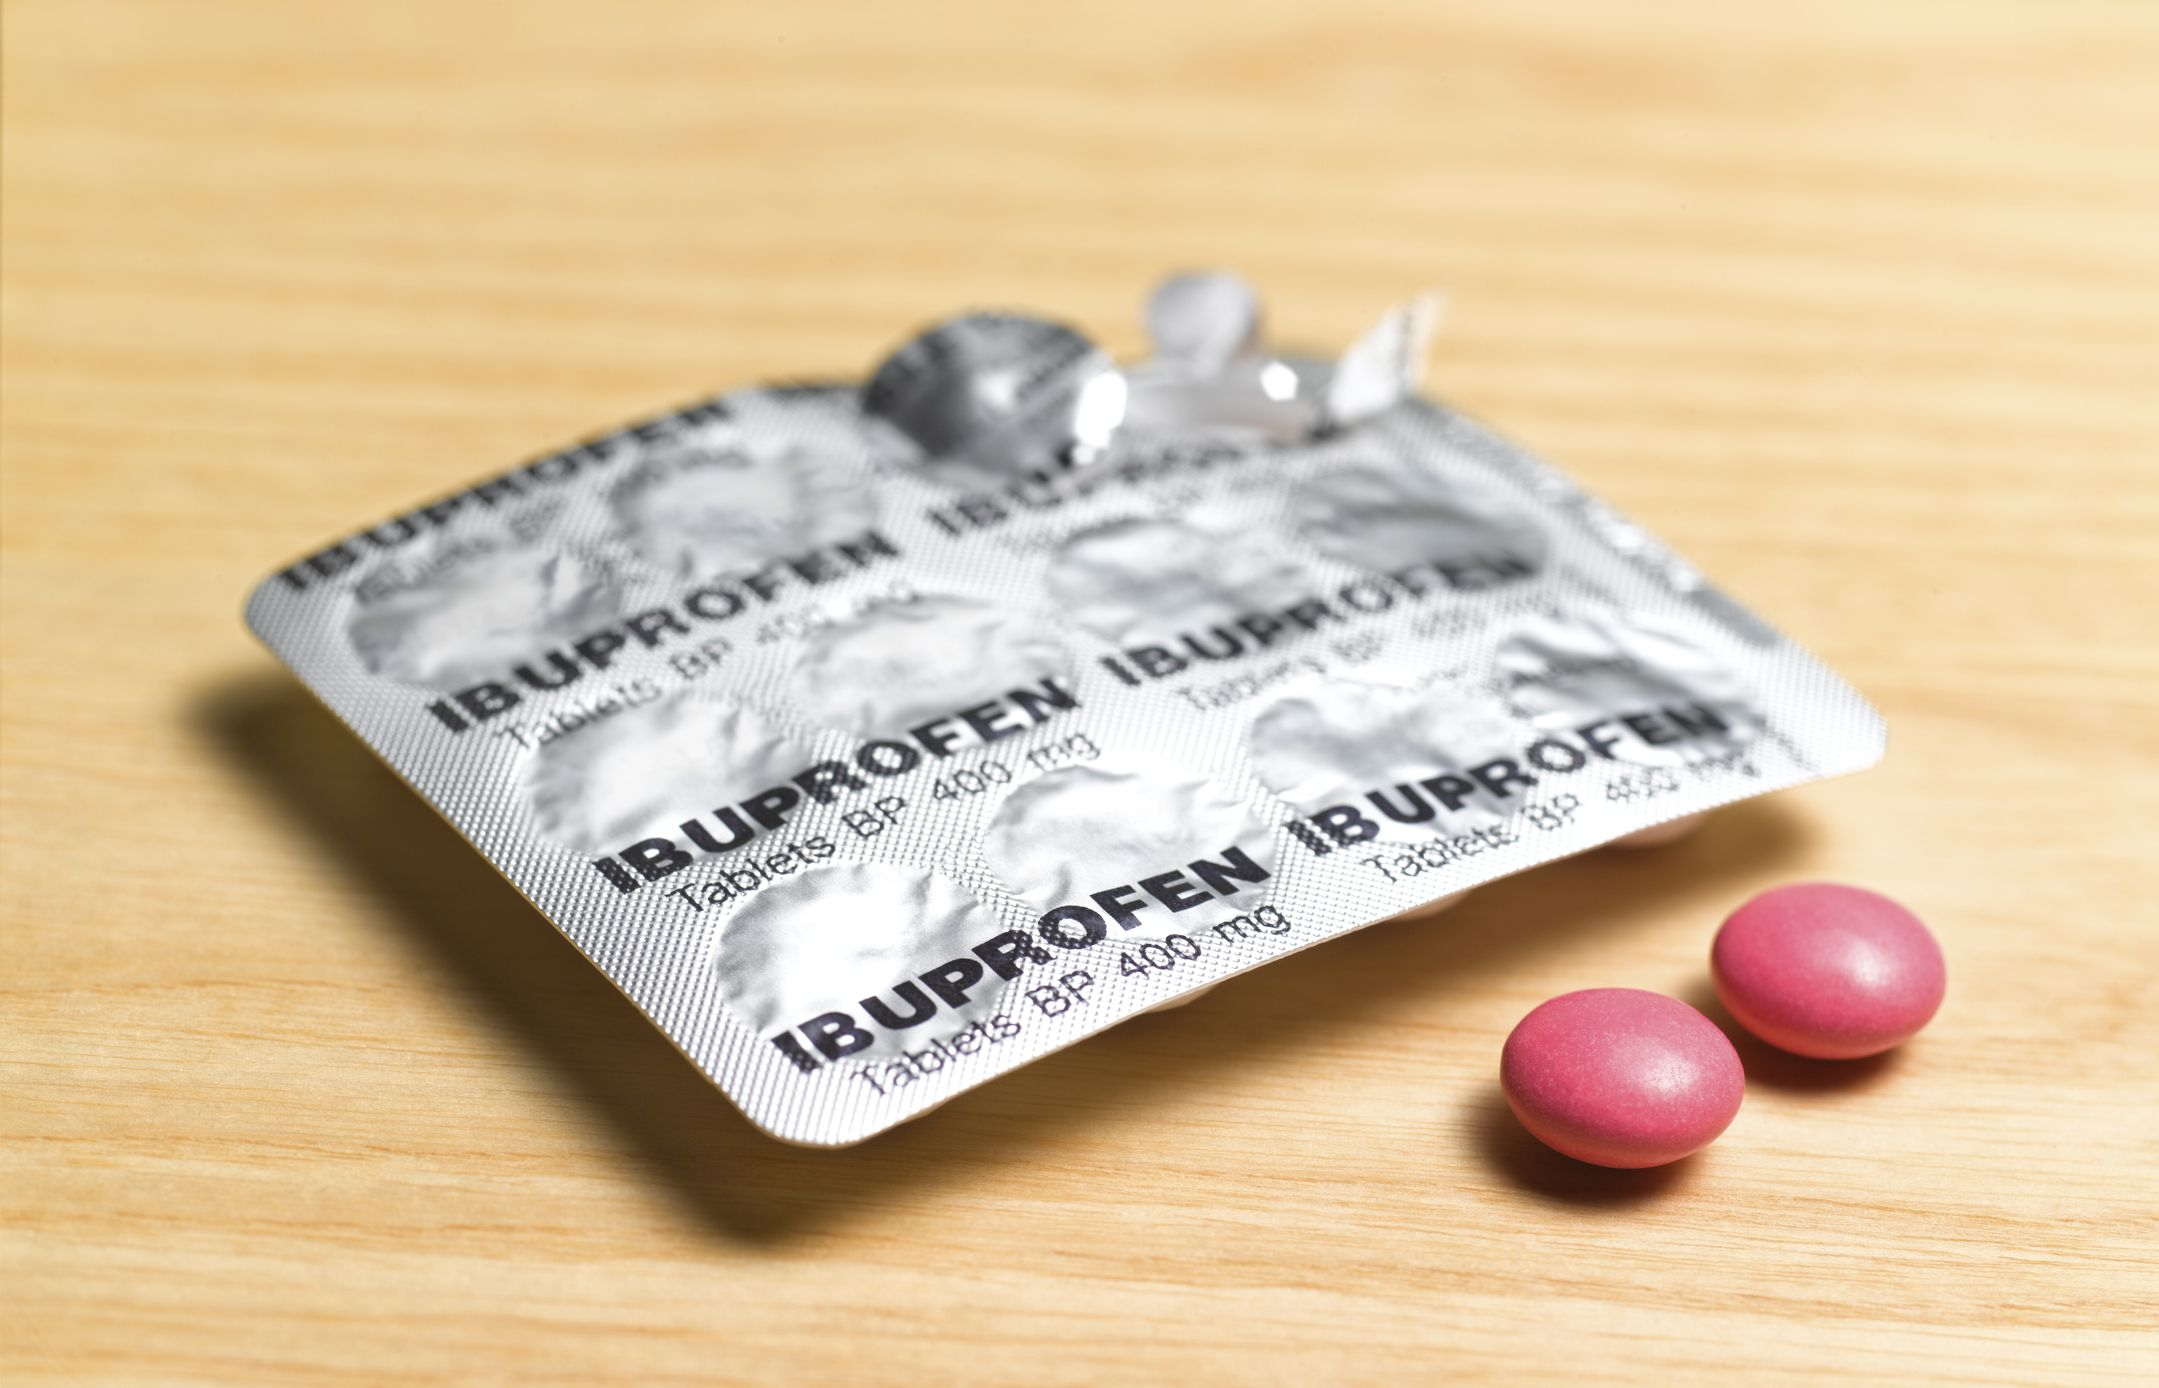 Ibuprofen Does Not Make COVID-19 More Severe, Study Finds